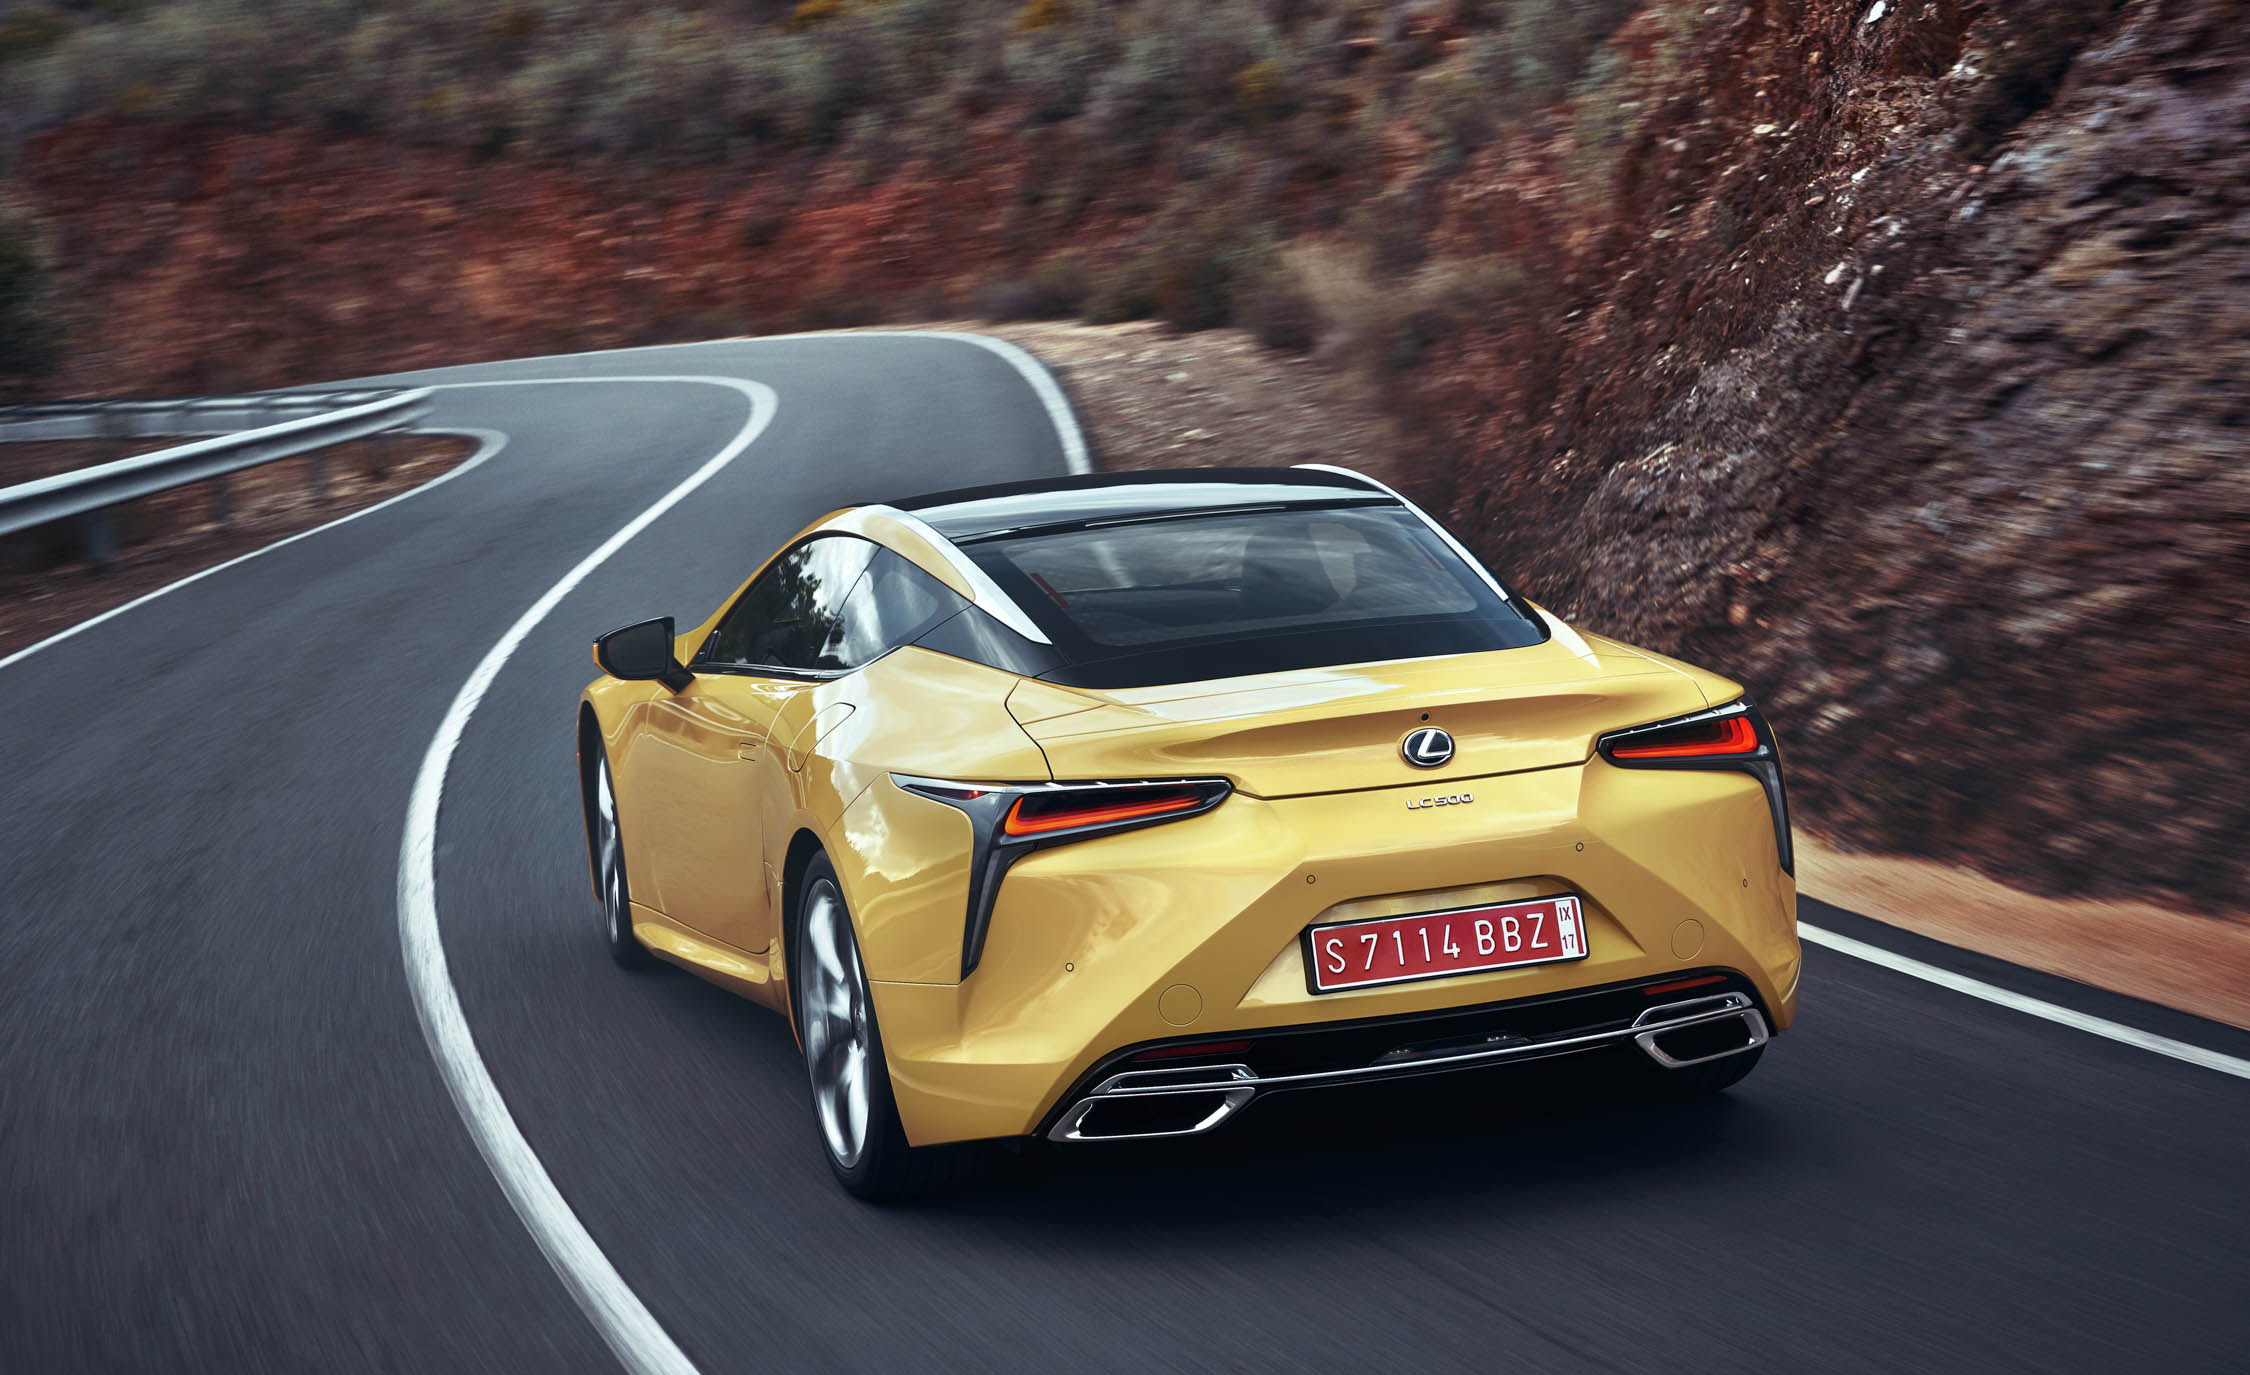 New 2018 Lexus Lc500 Rear View (View 79 of 84)